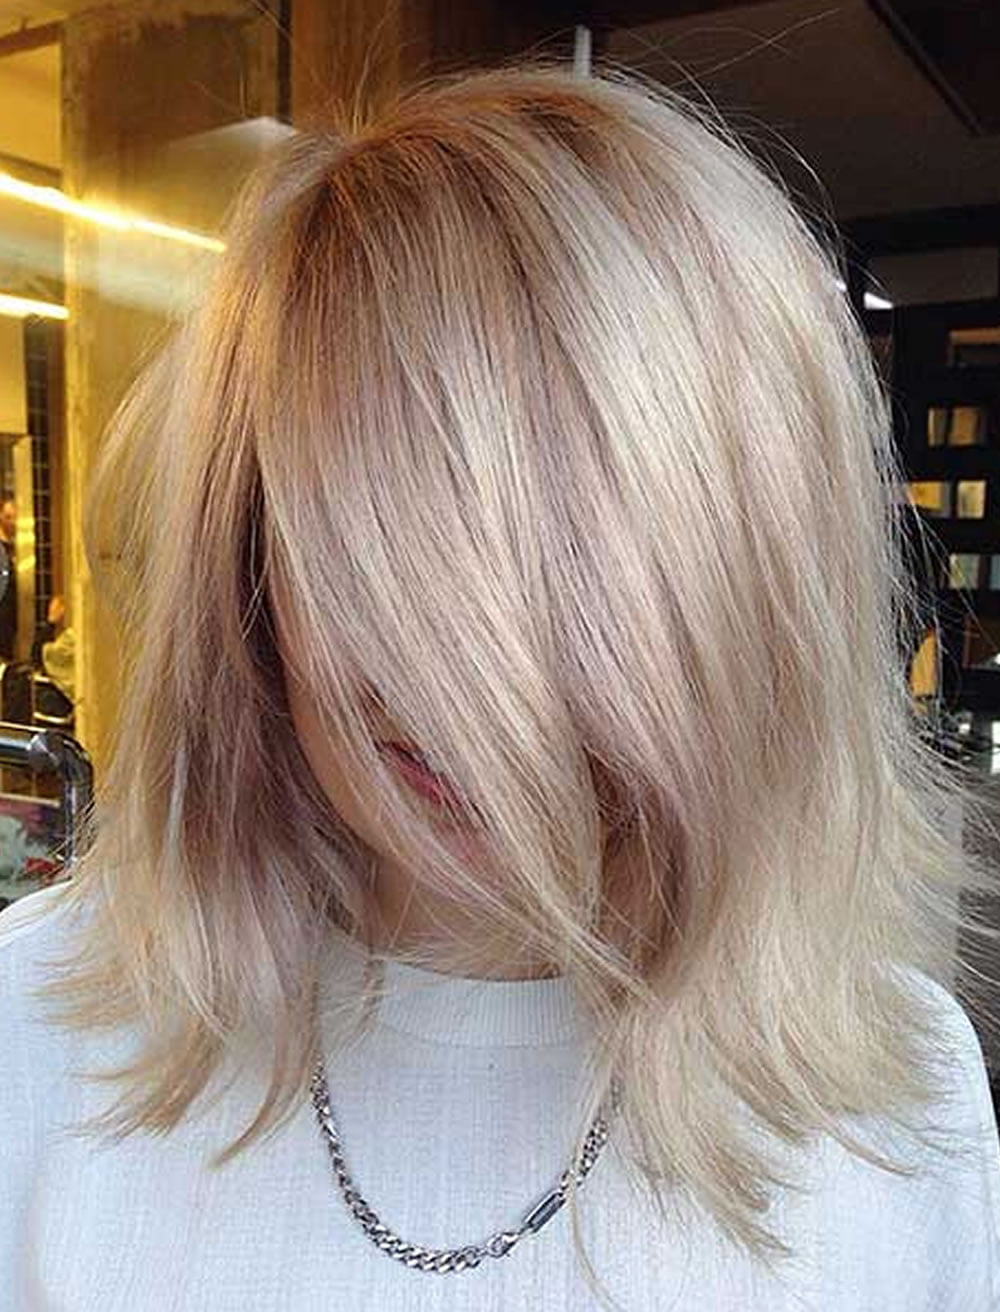 50 The Coolest Short Hairstyles and Hair Colors for Women ...